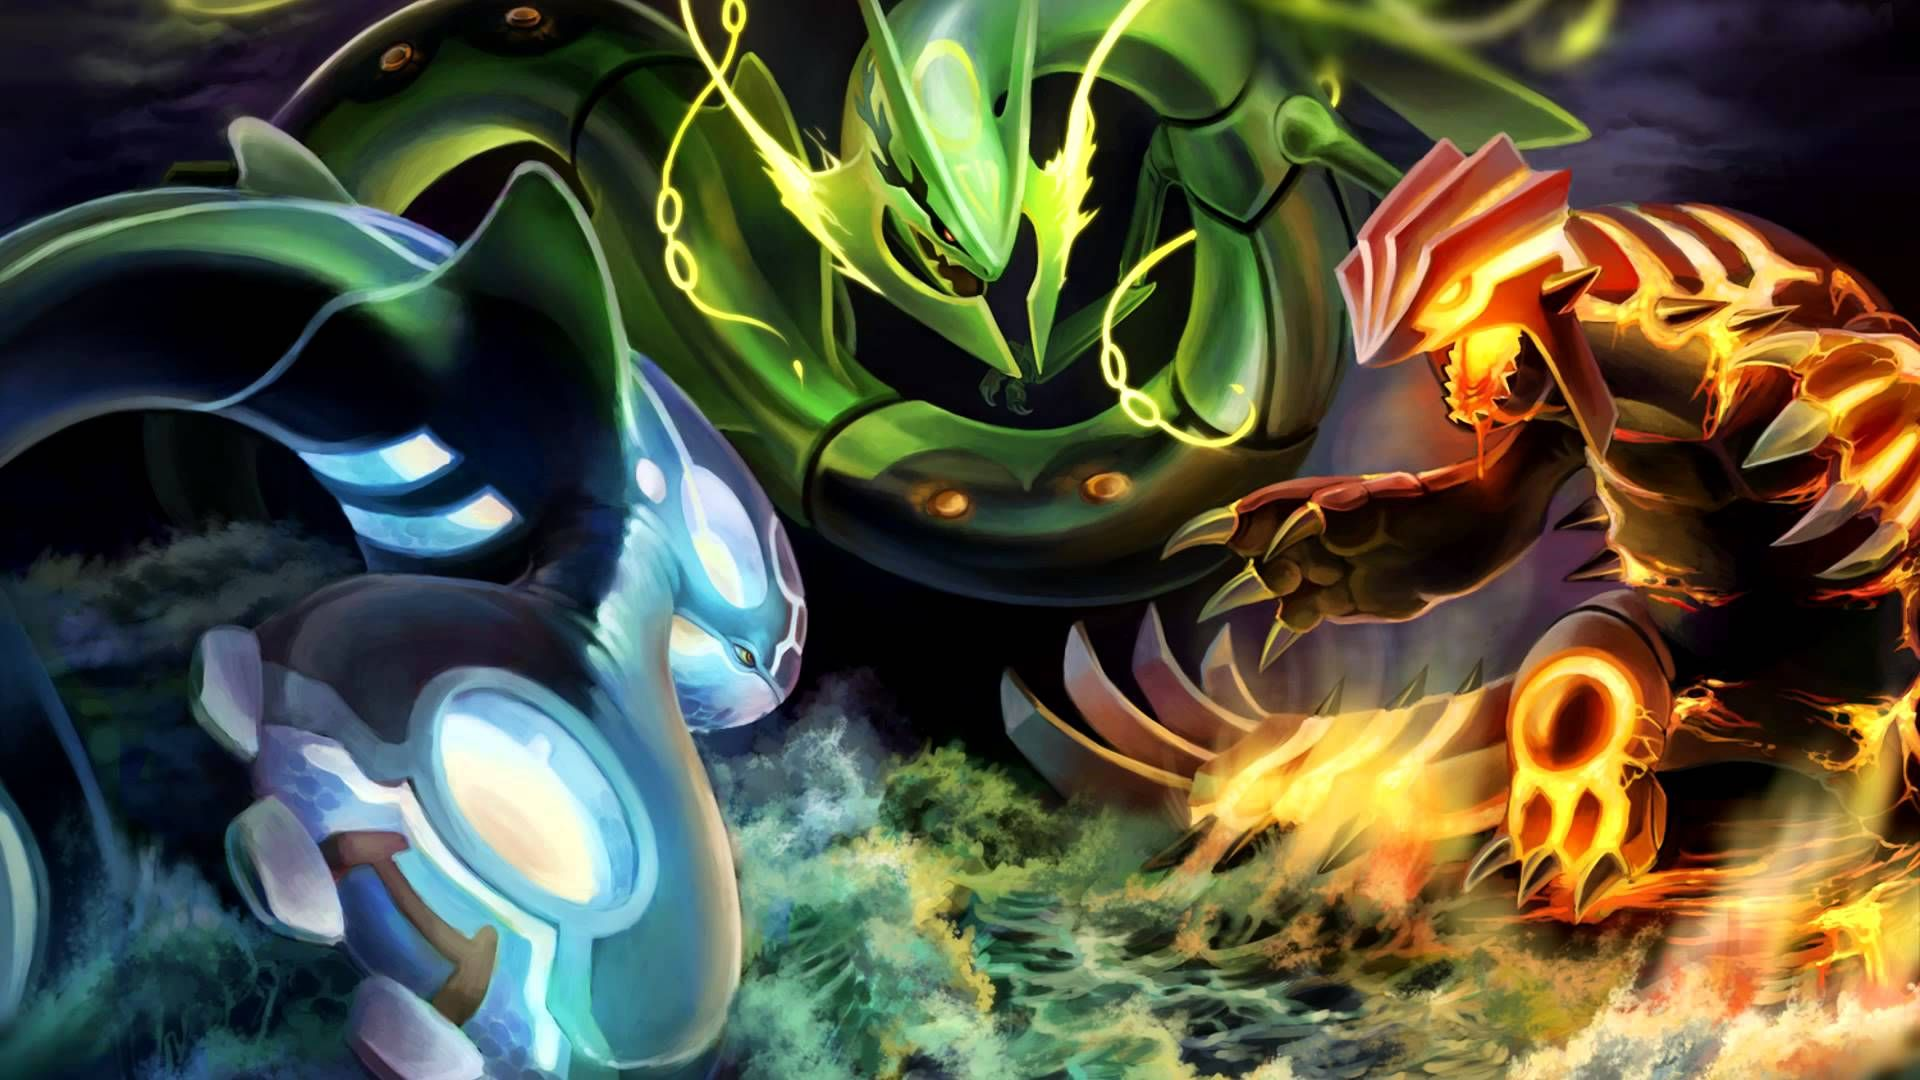 Legendary Pokemon Wallpapers Wide Sdeerwallpaper Cool Pokemon Wallpapers All Legendary Pokemon Pokemon Backgrounds